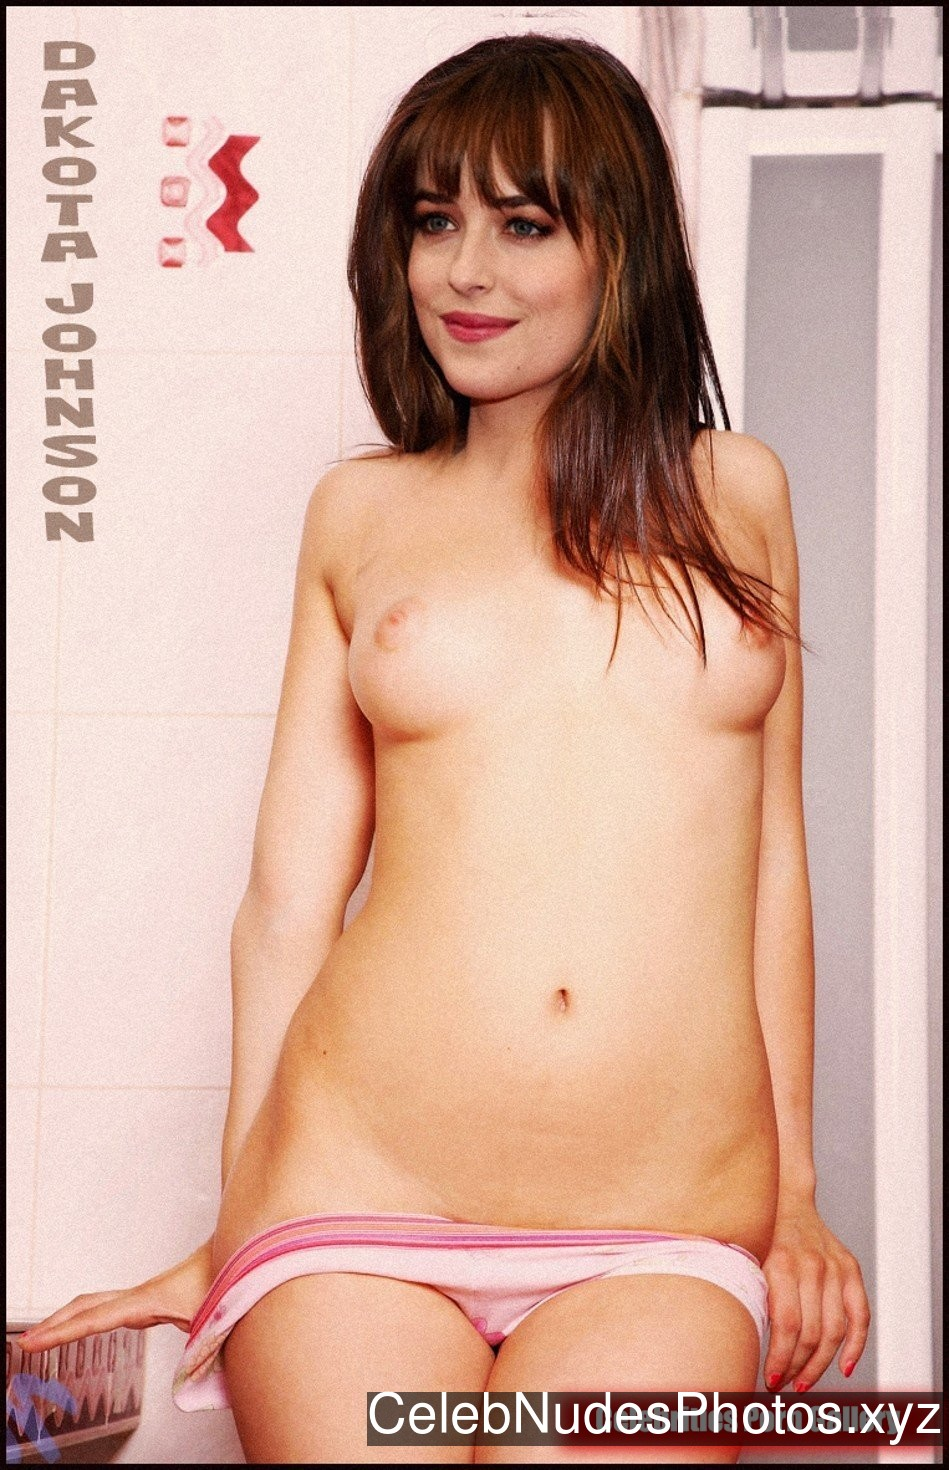 Dakota Johnson free nude celeb pics